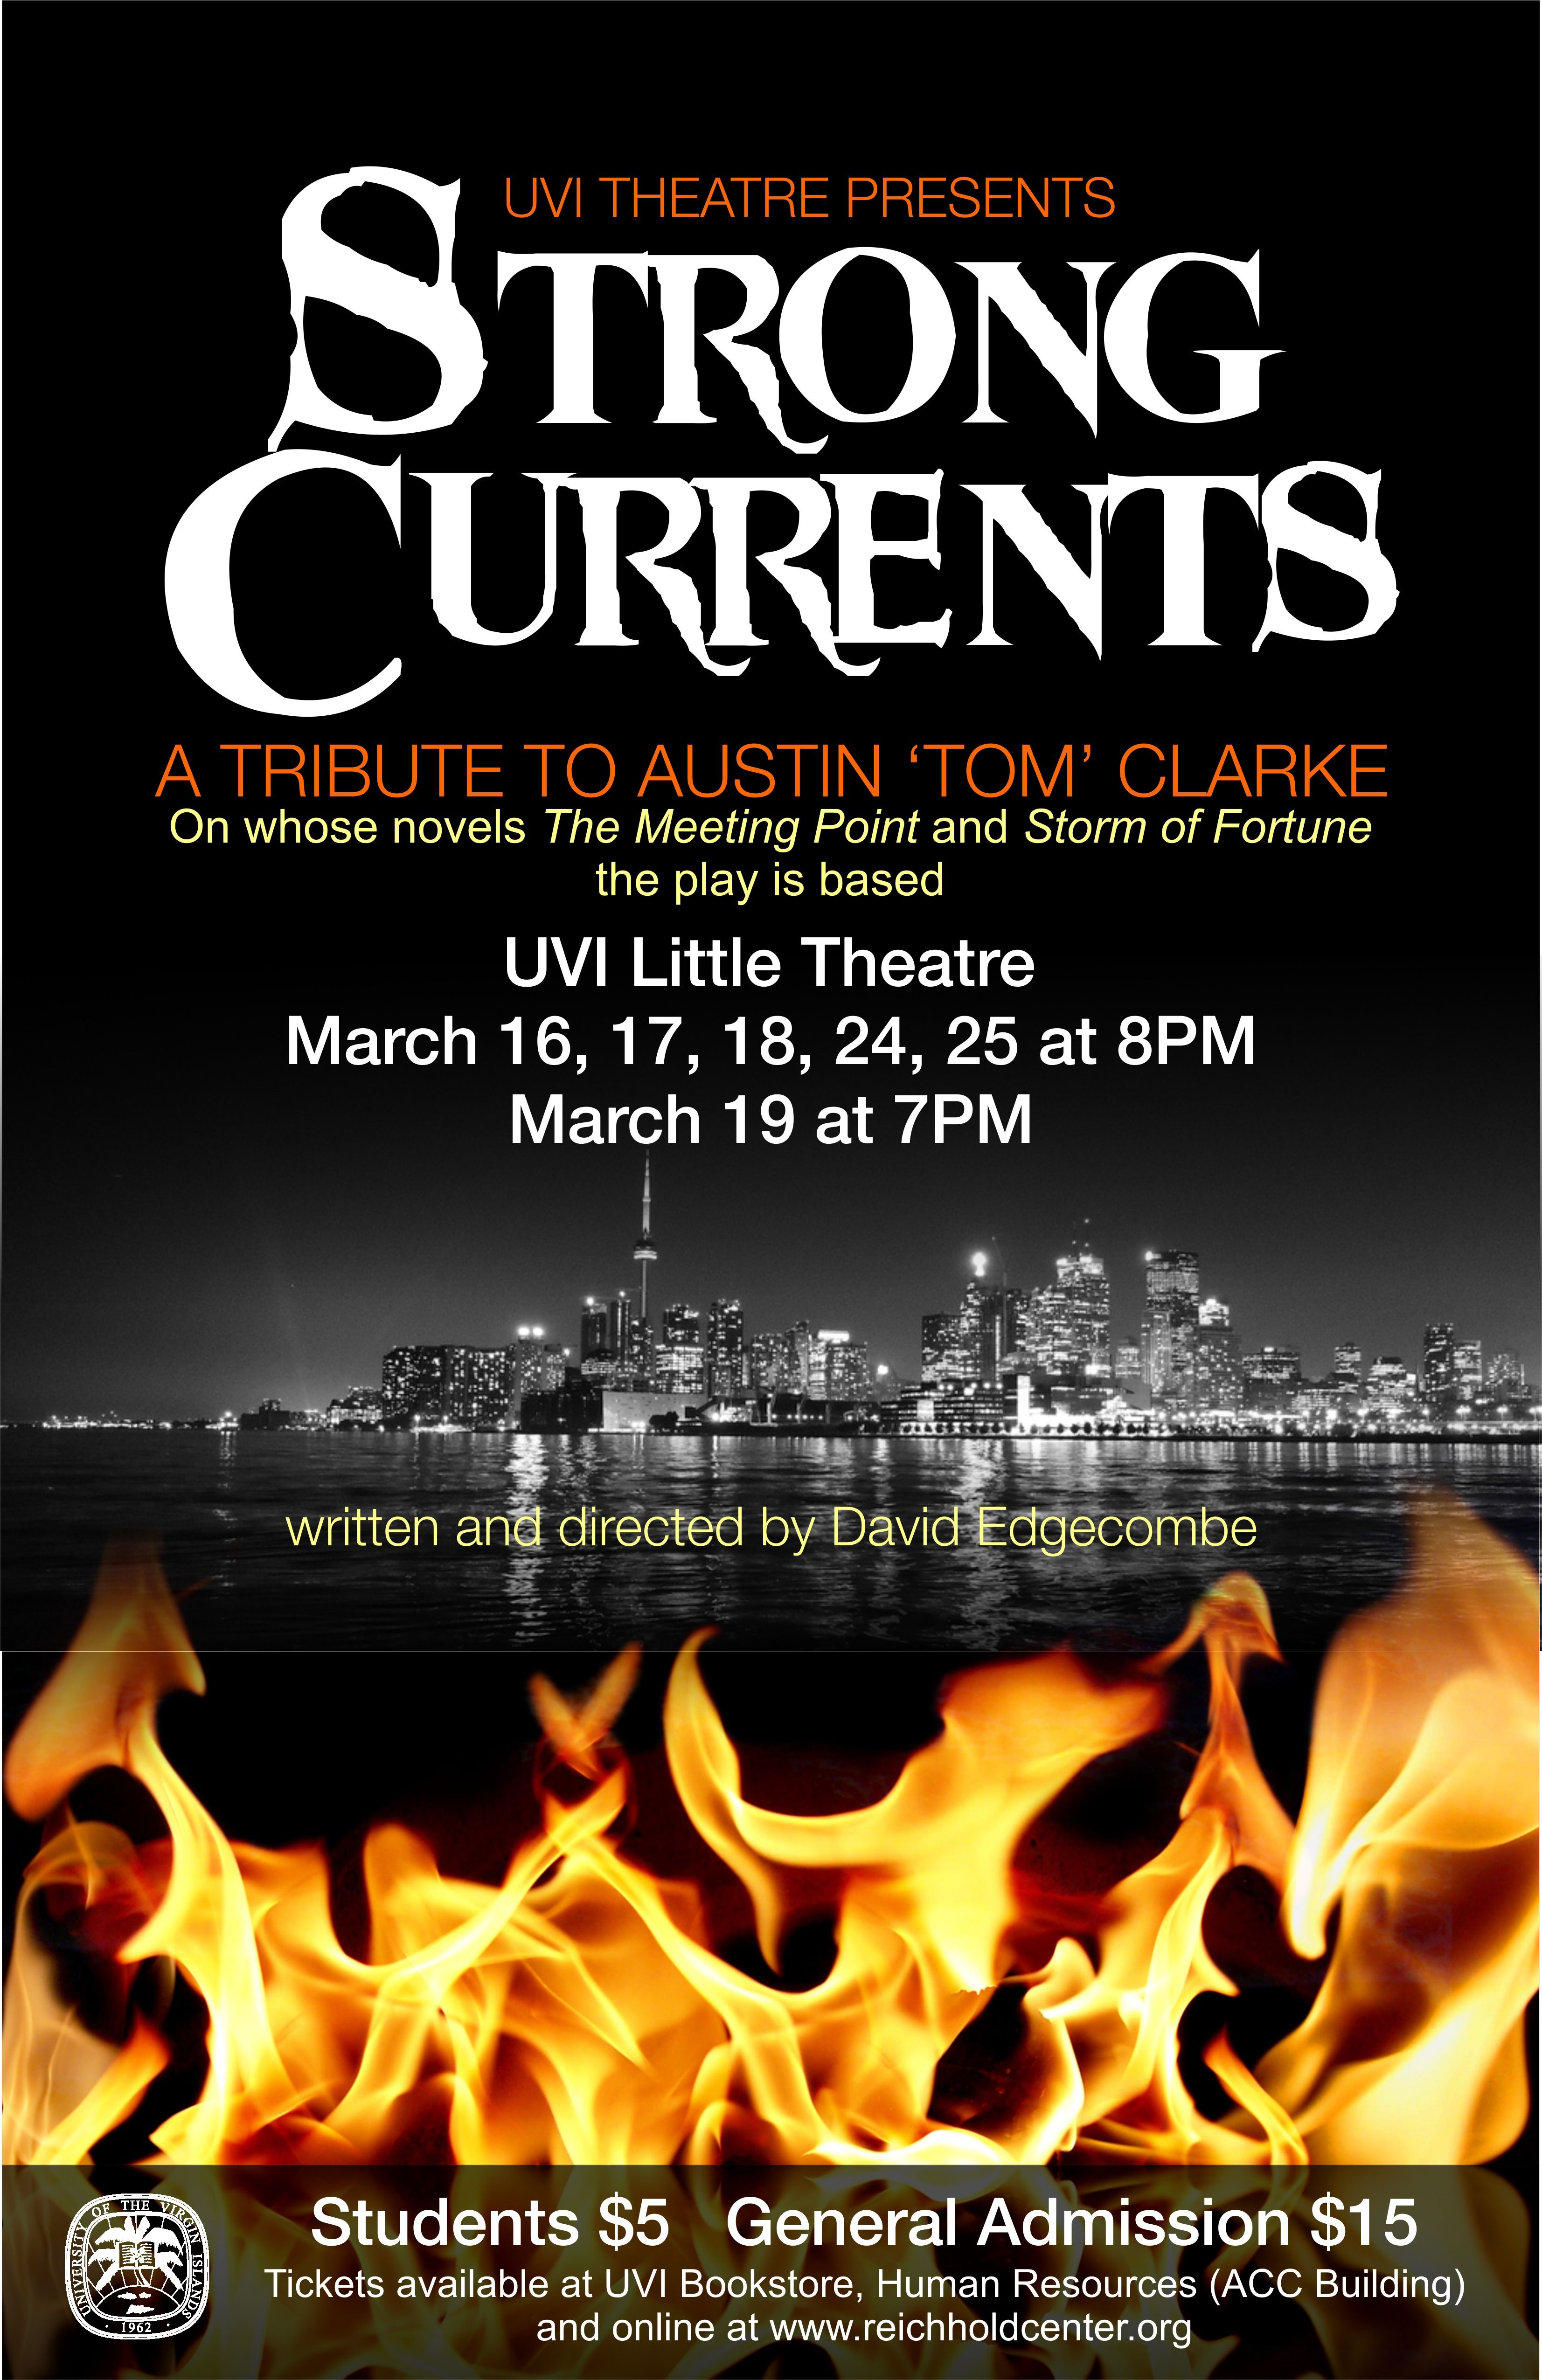 poster for strong currents play